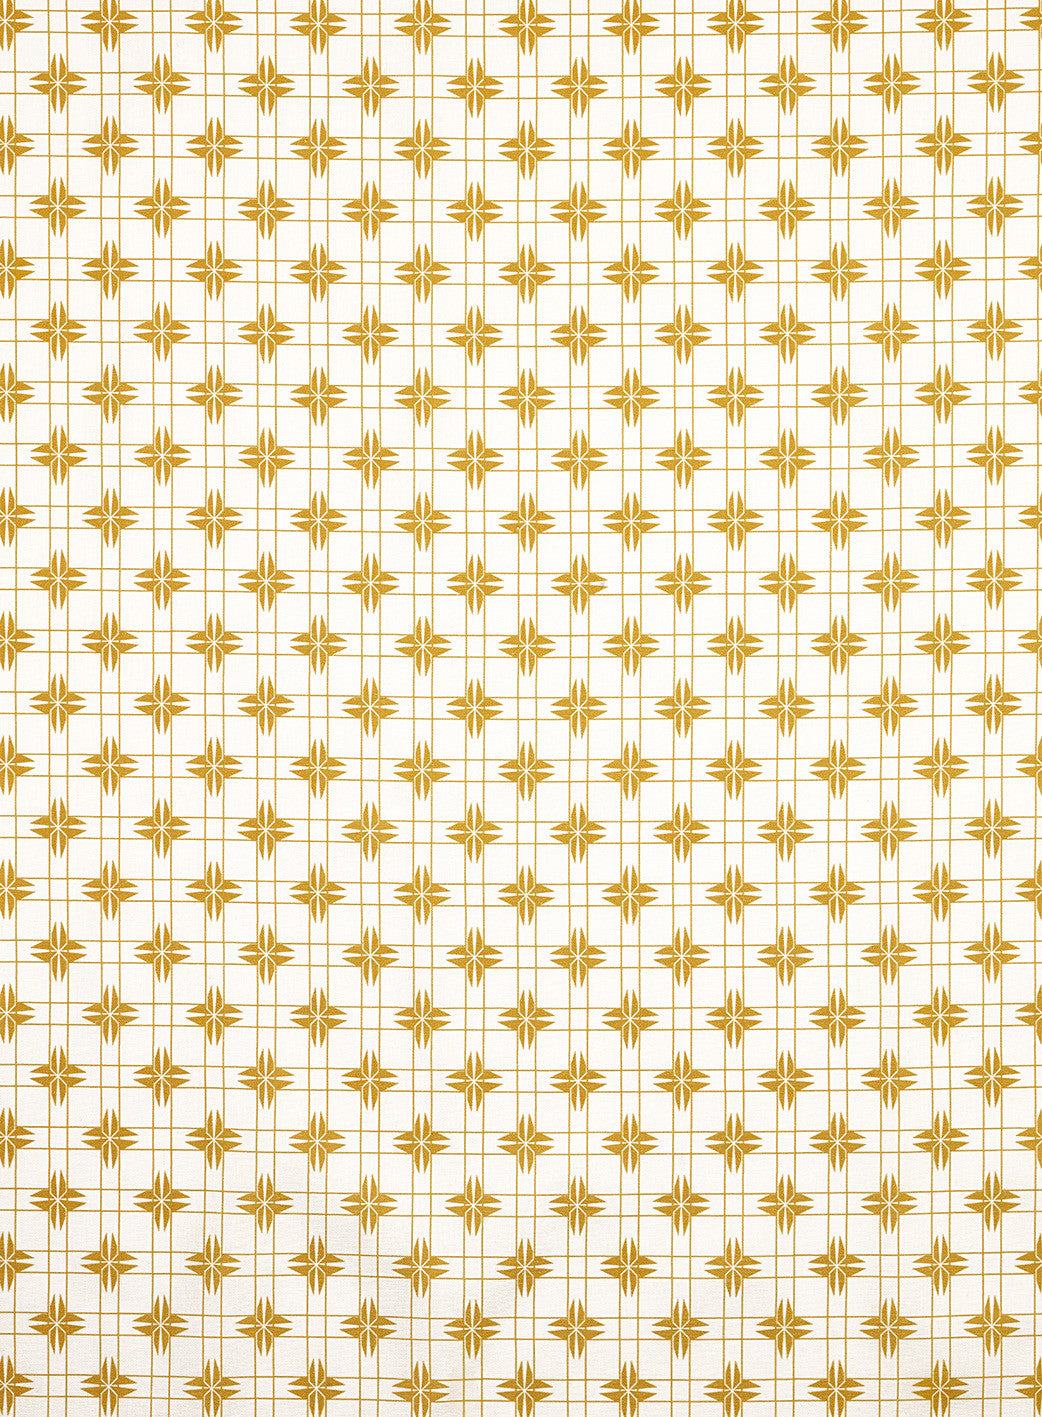 Pueblo Geometric Pattern Cotton Linen Home Decor Fabric by the meter or the yard - Gold- curtains, blinds, upholstery ships from Canada